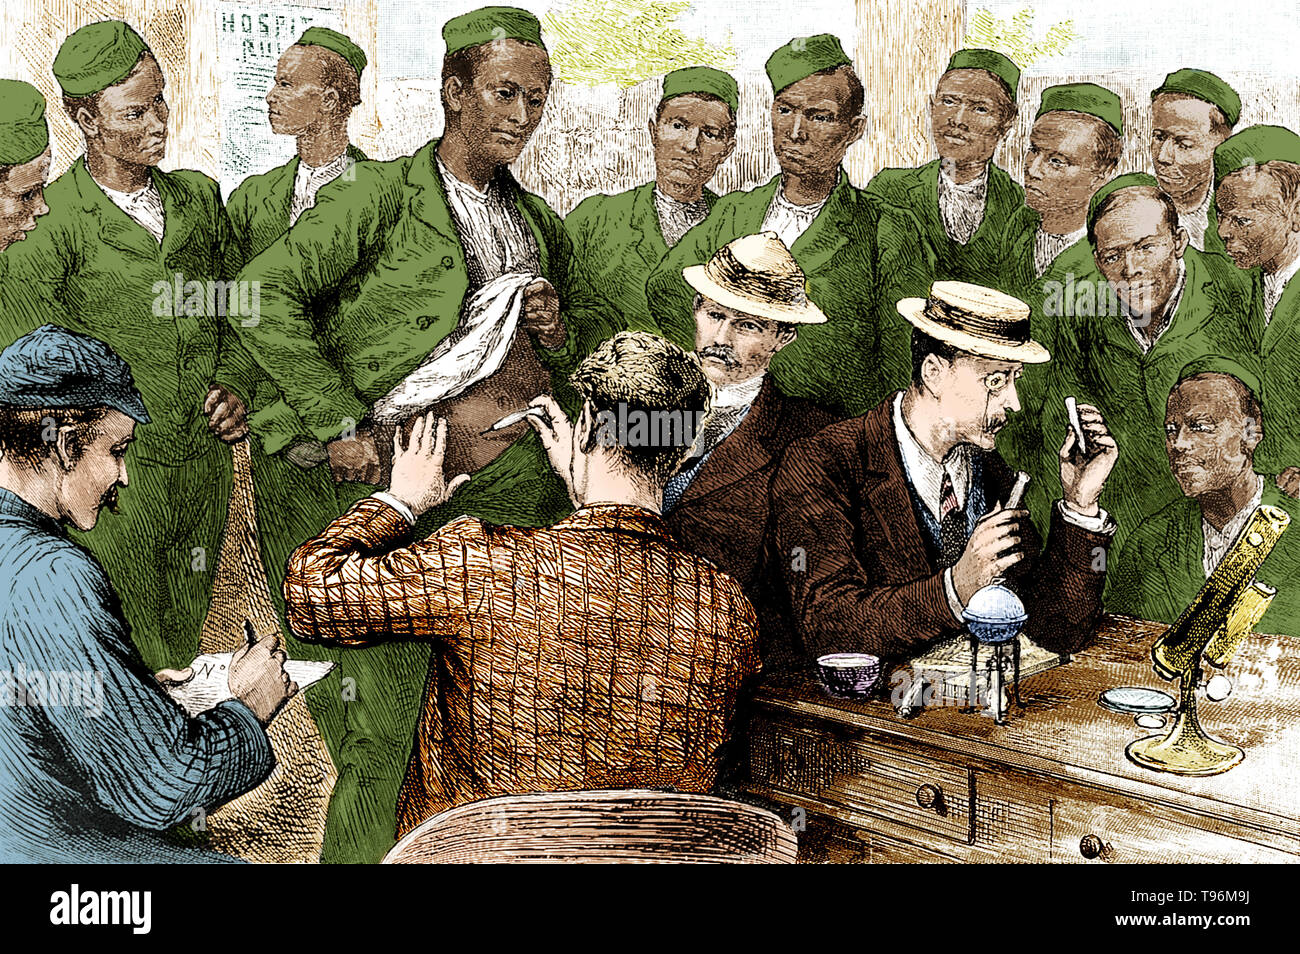 Cholera vaccination of the Third Gurkhas in India at the time of the 1893 epidemic.  The fifth cholera pandemic (1881-1896) cost 250,000 lives in Europe and at least 50,000 in the Americas. Cholera claimed 267,890 lives in Russia (1892); 120,000 in Spain; 90,000 in Japan and over 60,000 in Persia. In Egypt, cholera claimed more than 58,000 lives. The 1892 outbreak in Hamburg killed 8,600 people. Although the city government was generally held responsible for the virulence of the epidemic, it went largely unchanged. This was the last serious European cholera outbreak, as cities improved their s - Stock Image